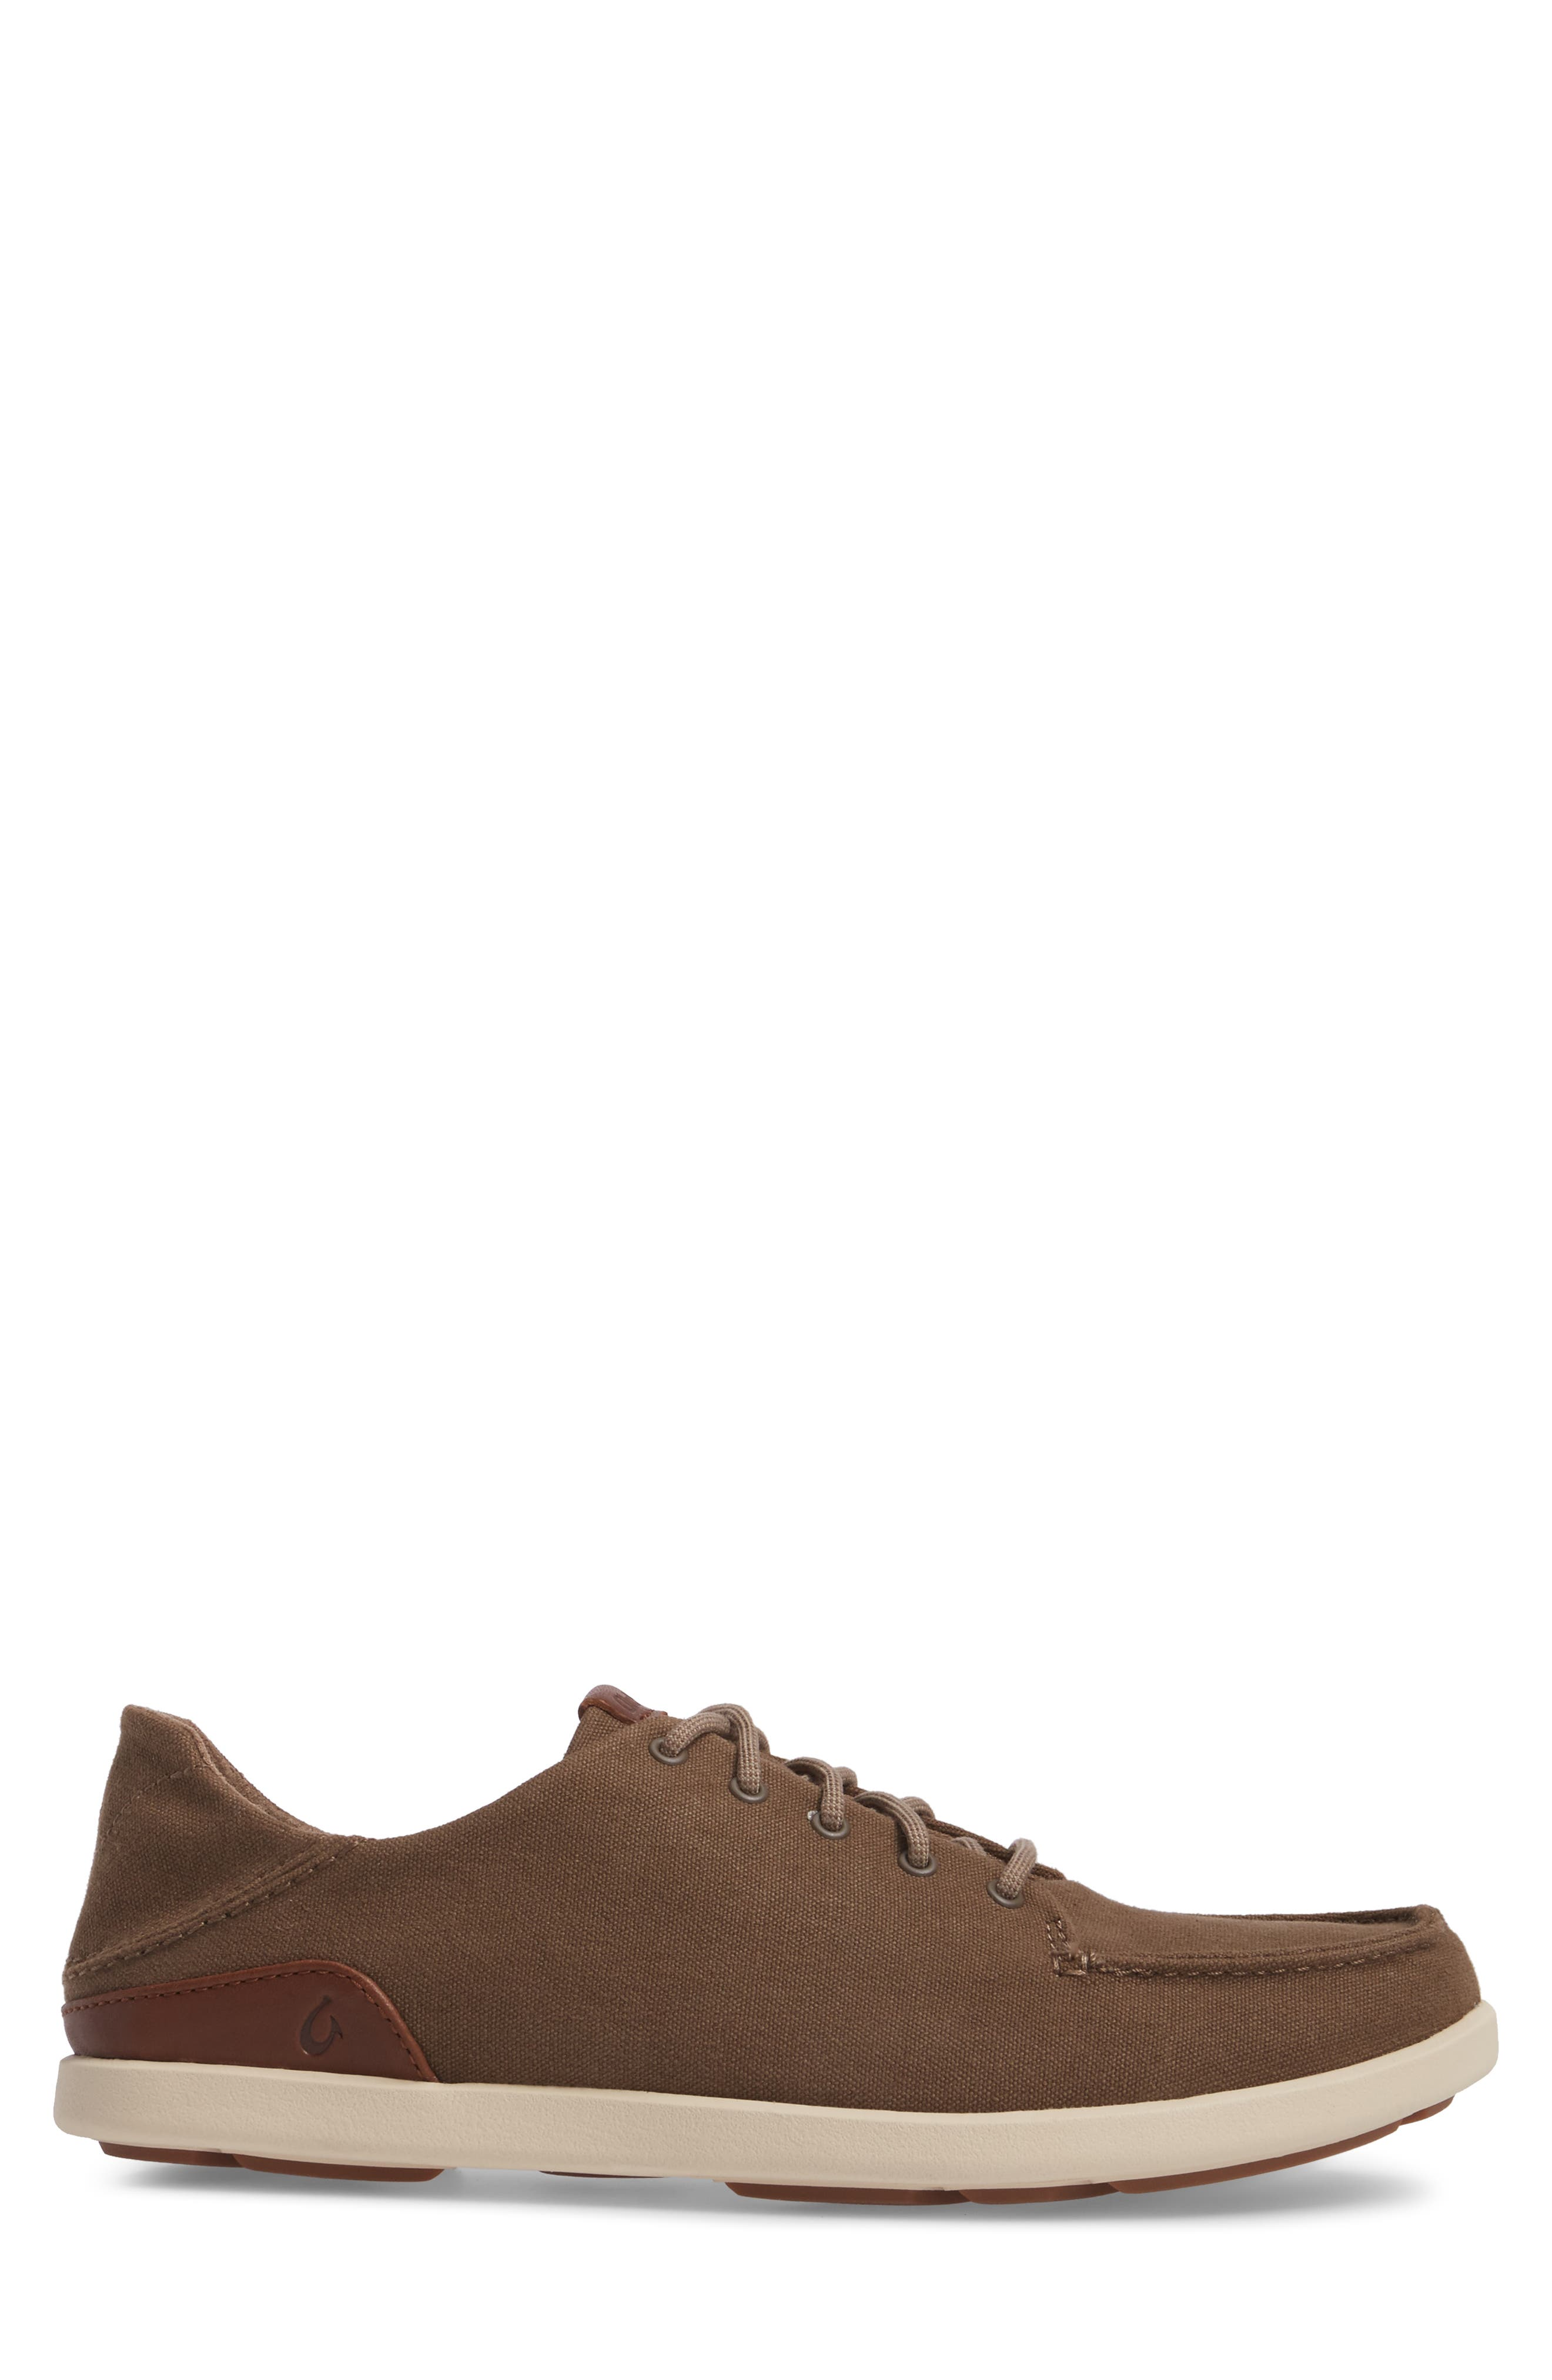 Manoa Sneaker,                             Alternate thumbnail 3, color,                             MUSTANG/ TOFFEE